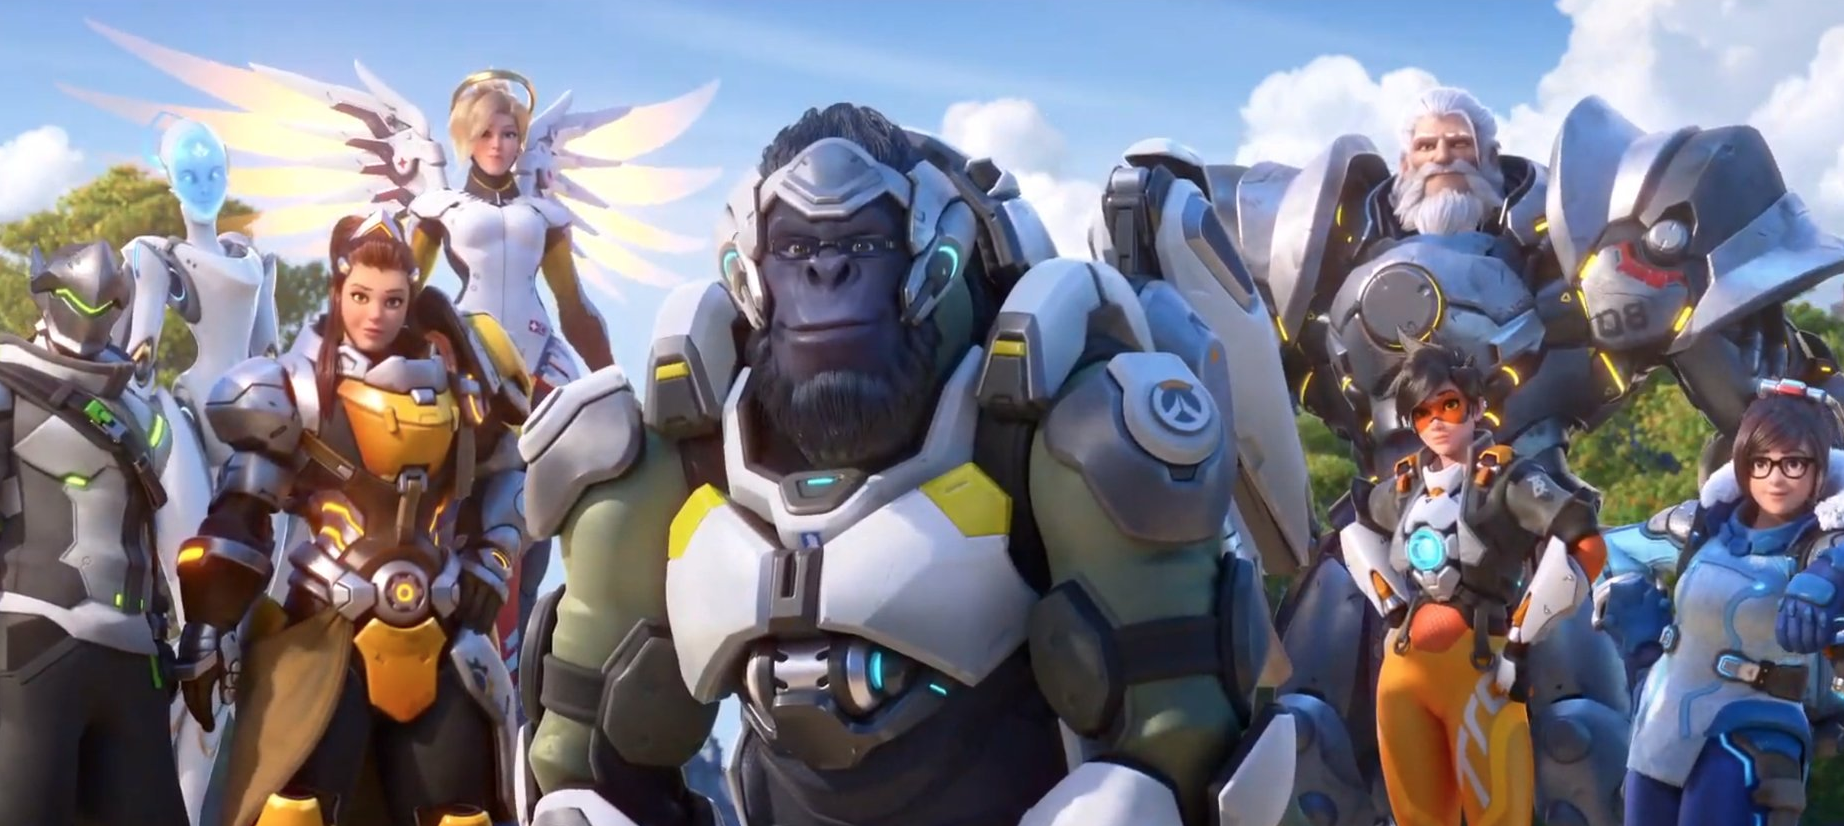 Overwatch 2 cast of characters